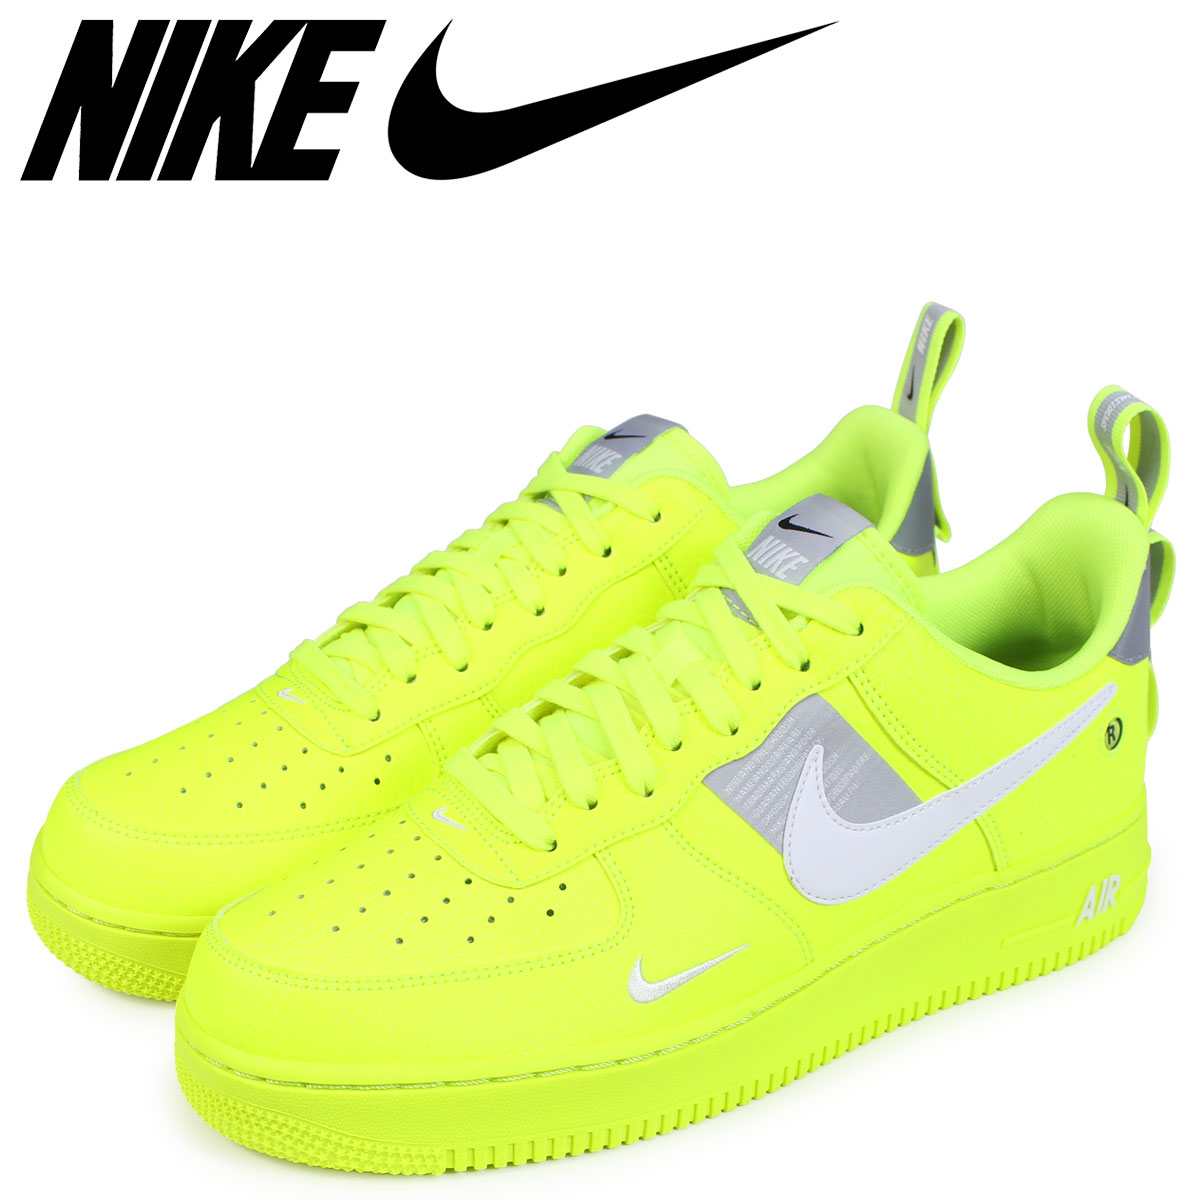 air force 1 verdi fluo